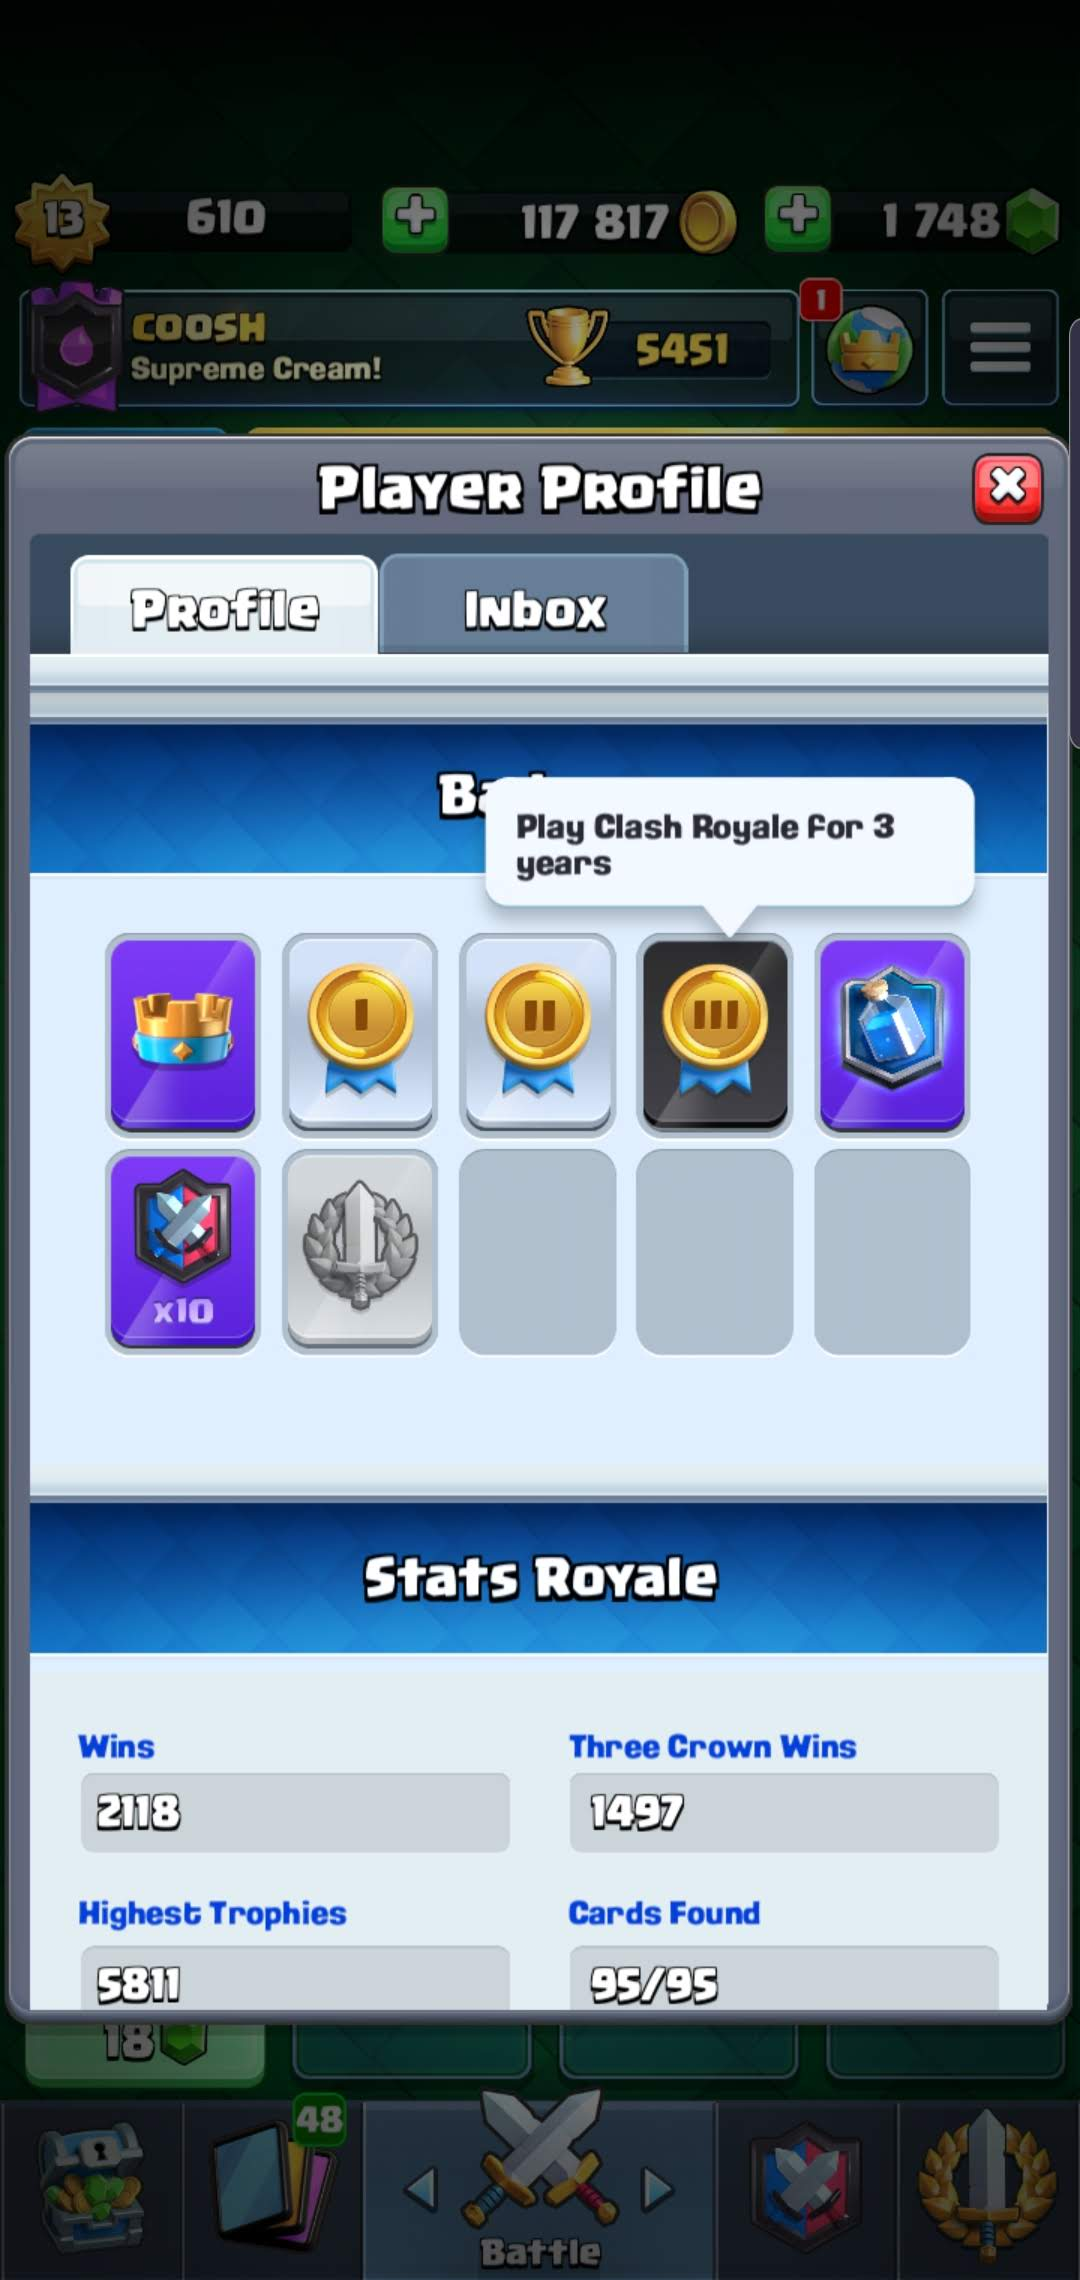 Happy Clash Royale-iversary!